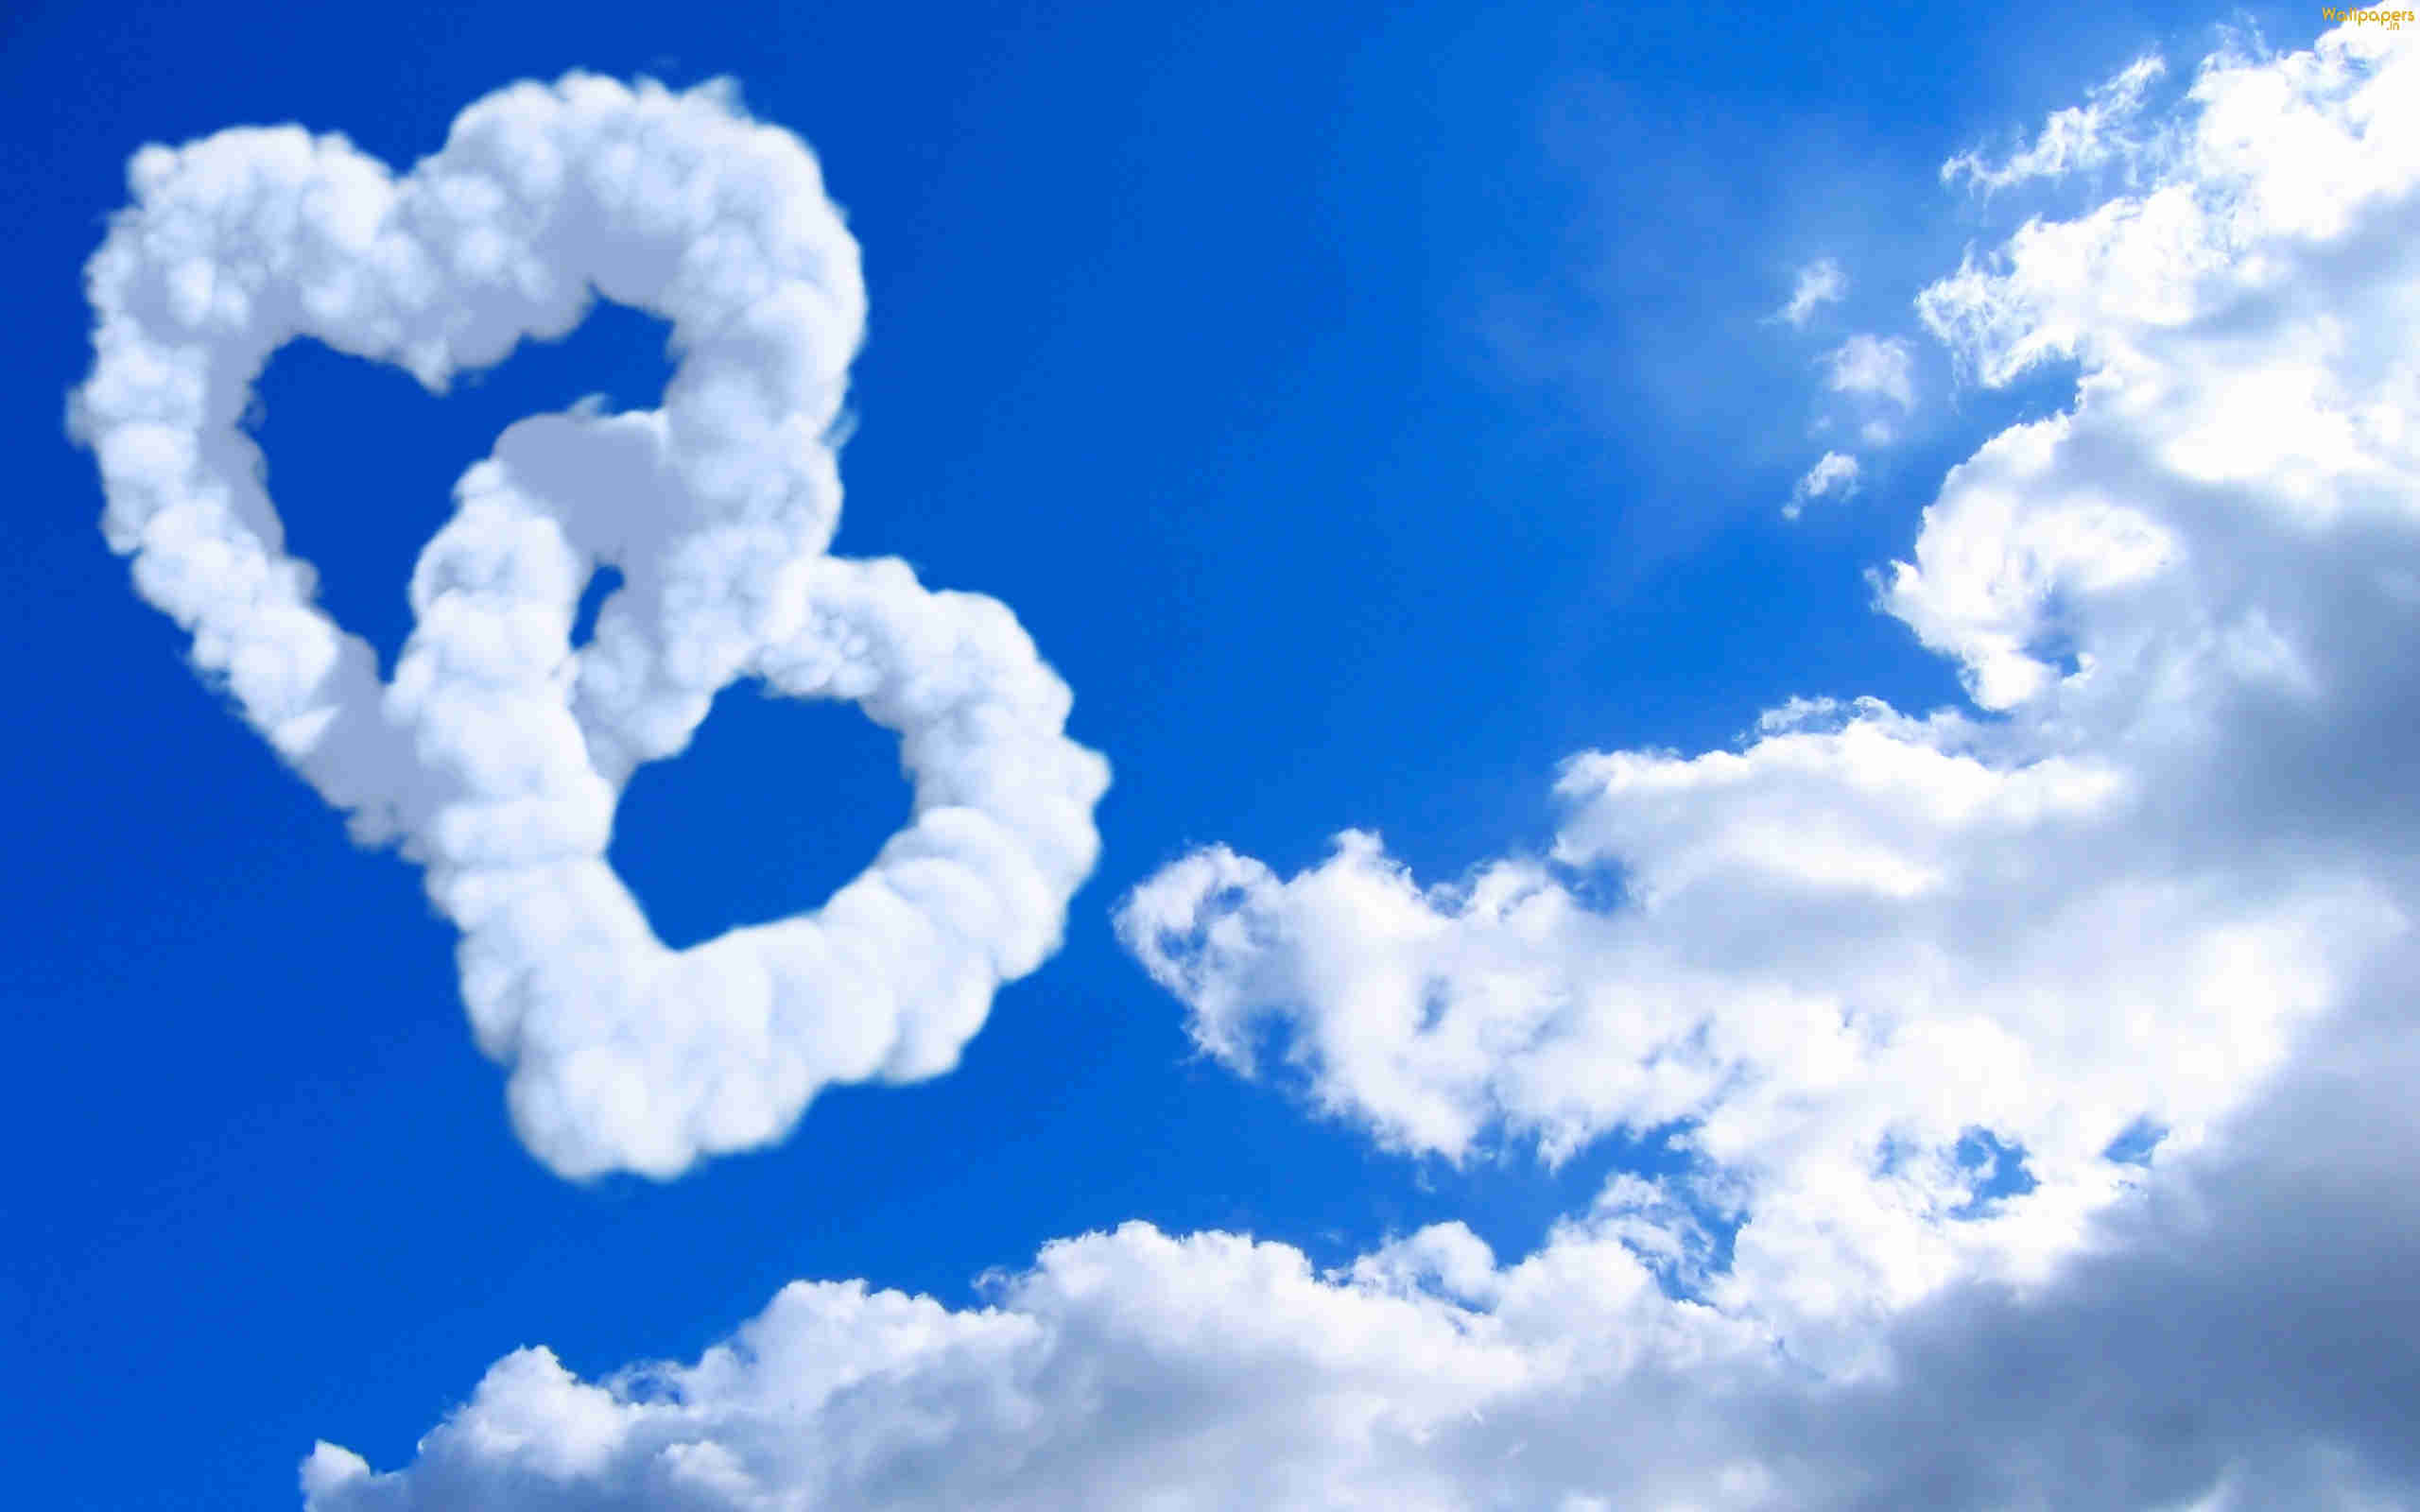 Cloud Of Love Background Wallpaper